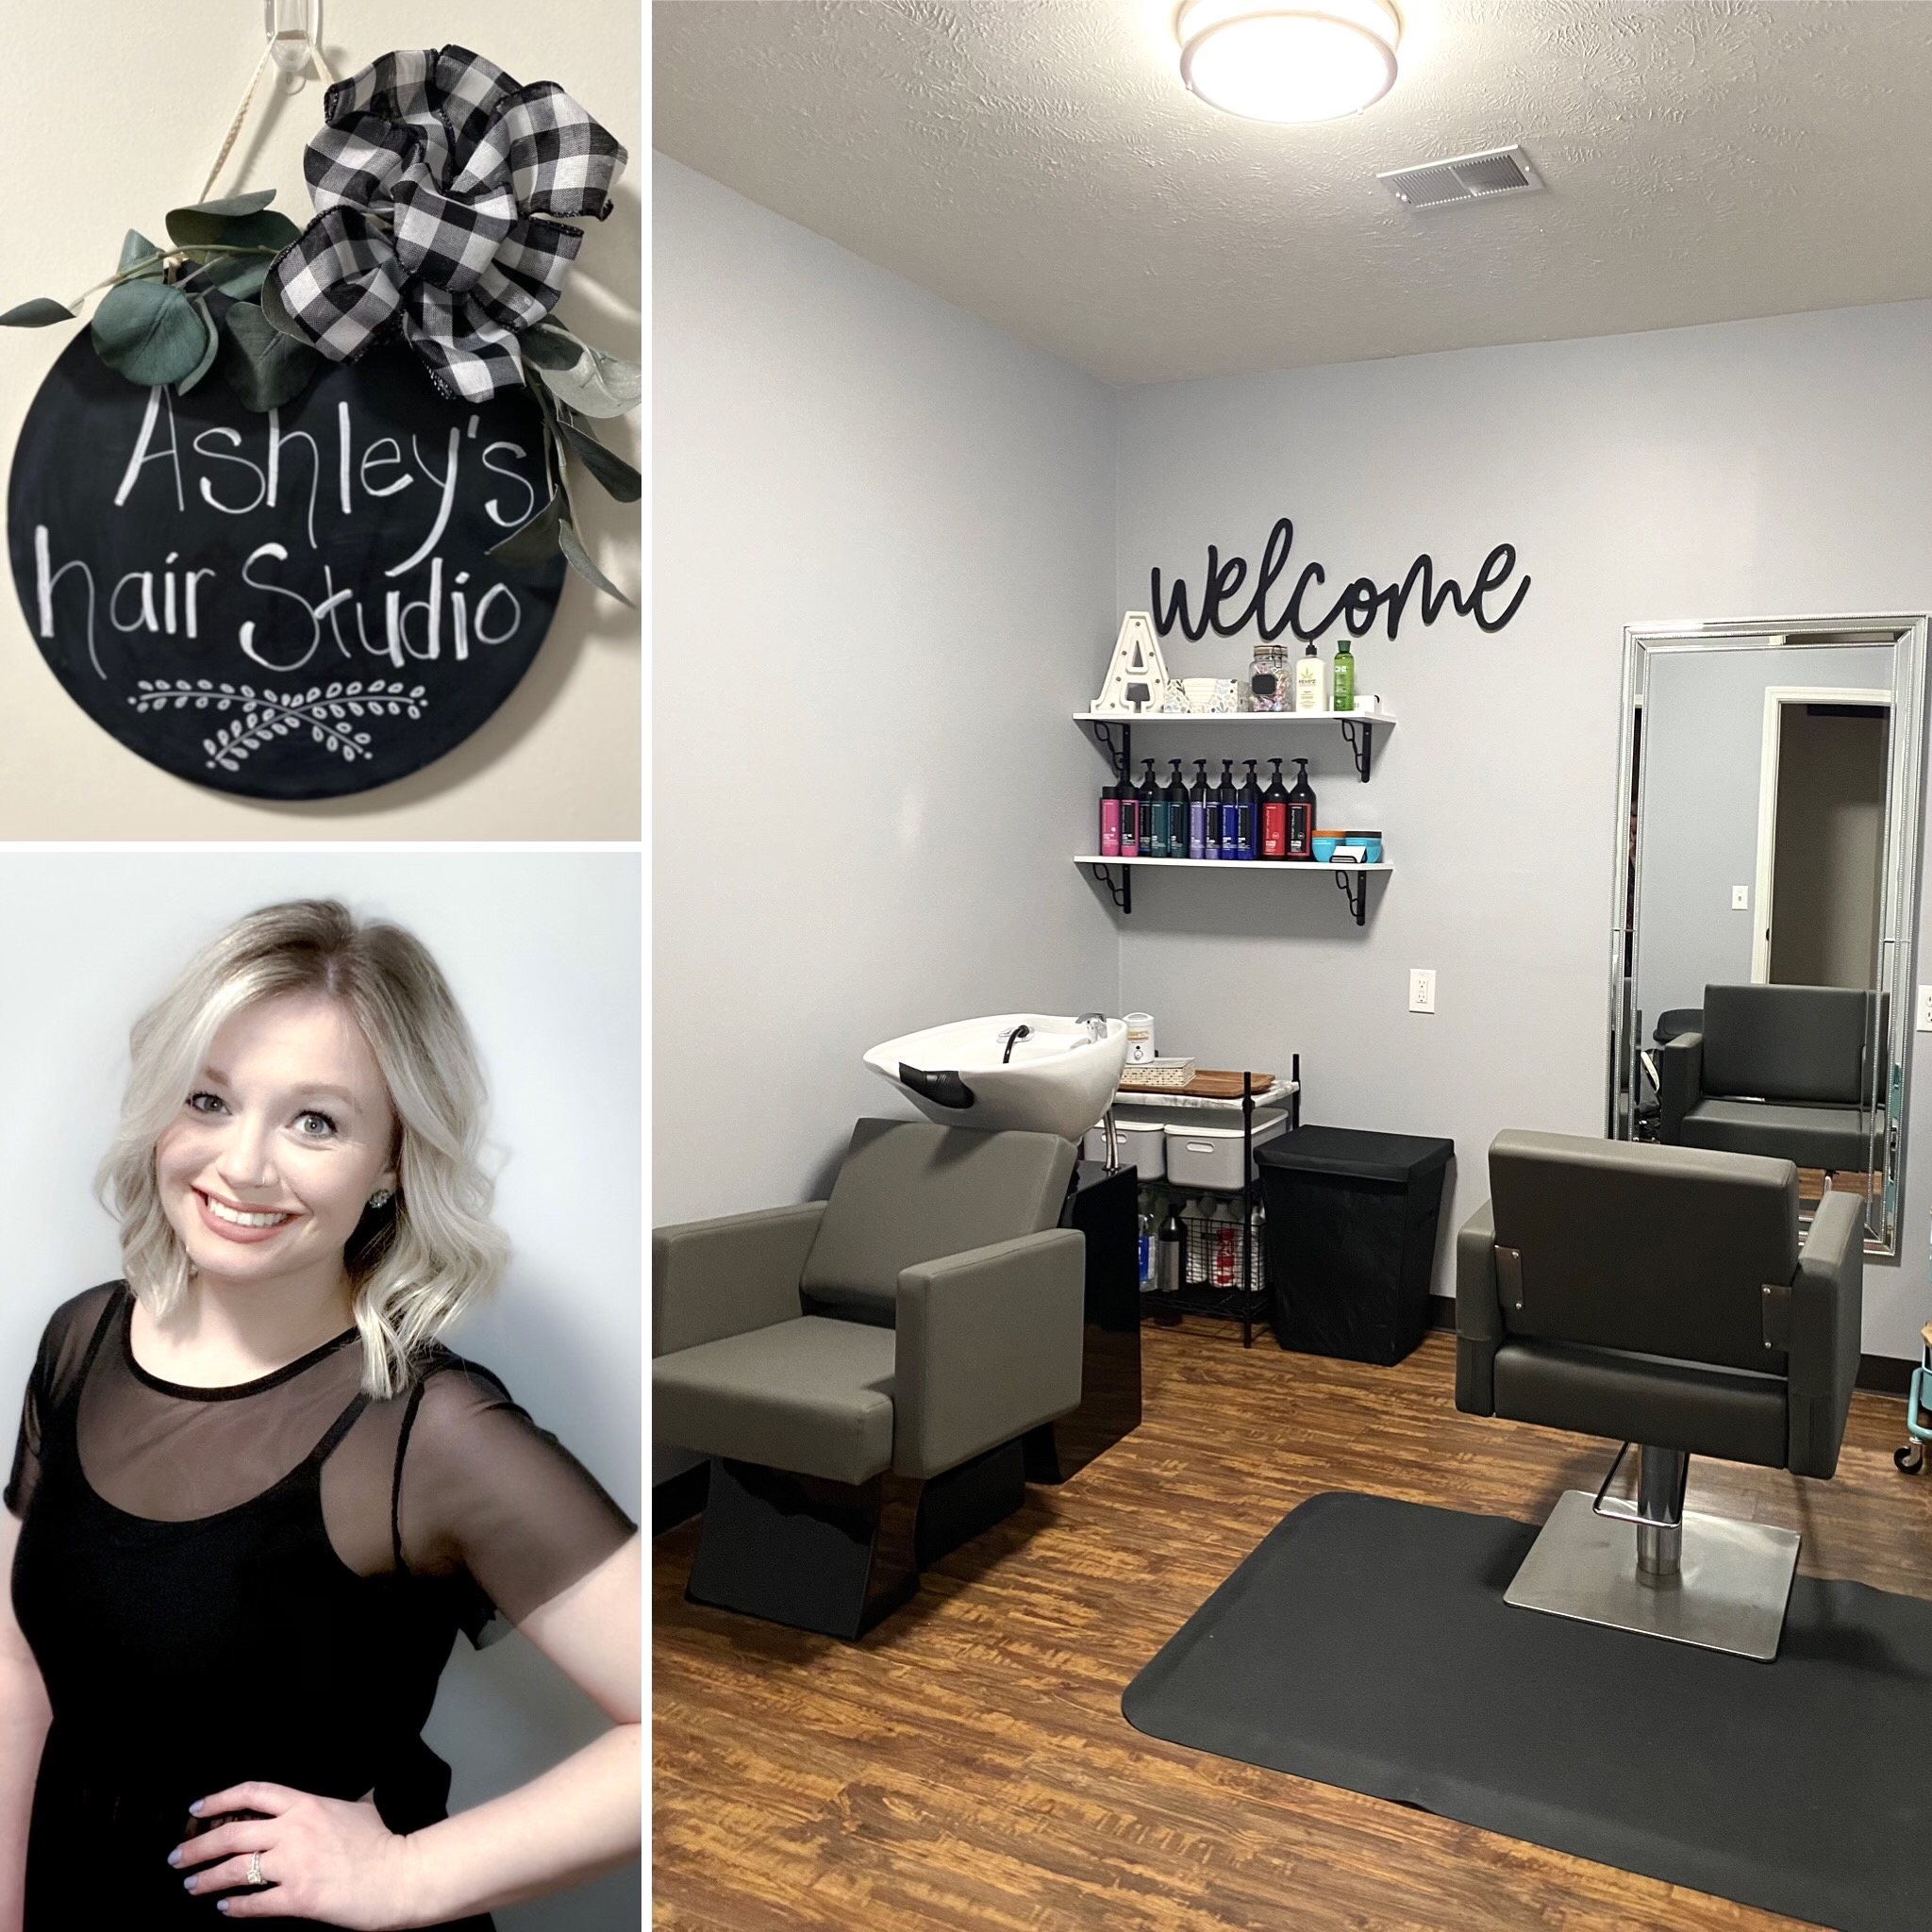 Stylist Room Available